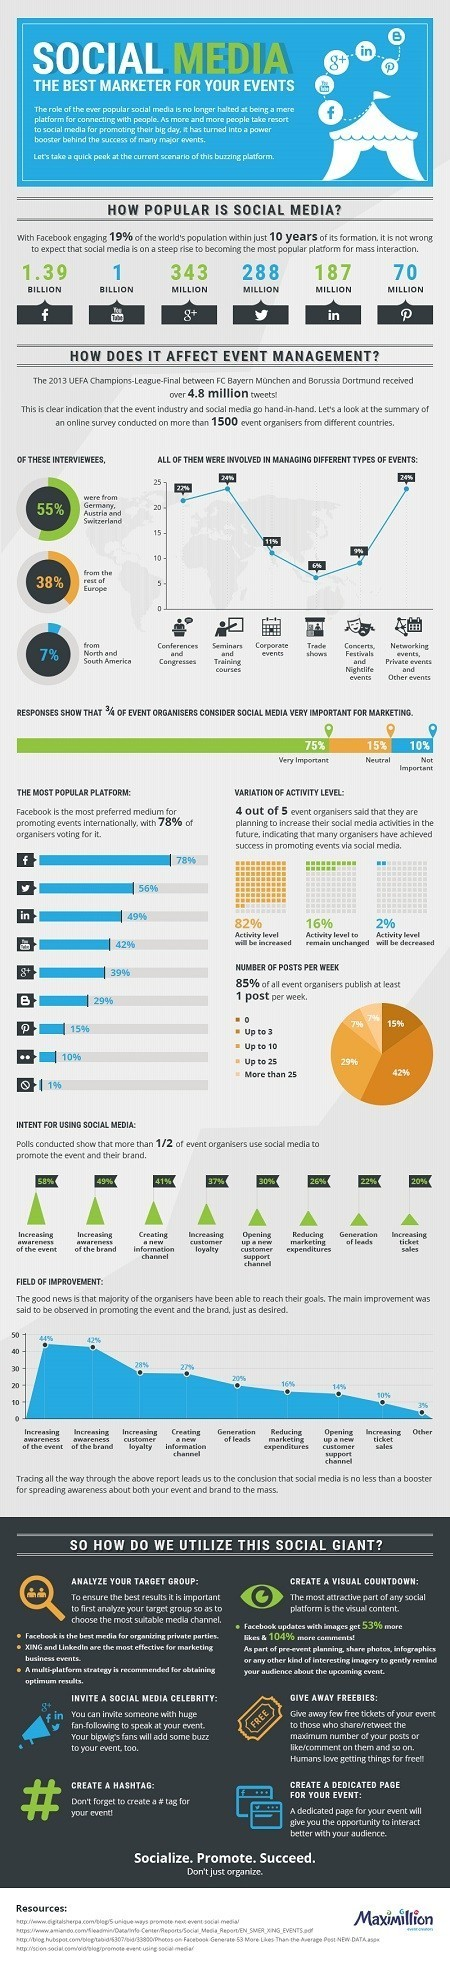 Social Media Is the Best Marketer for Your Events #Infographic | MarketingHits | Scoop.it